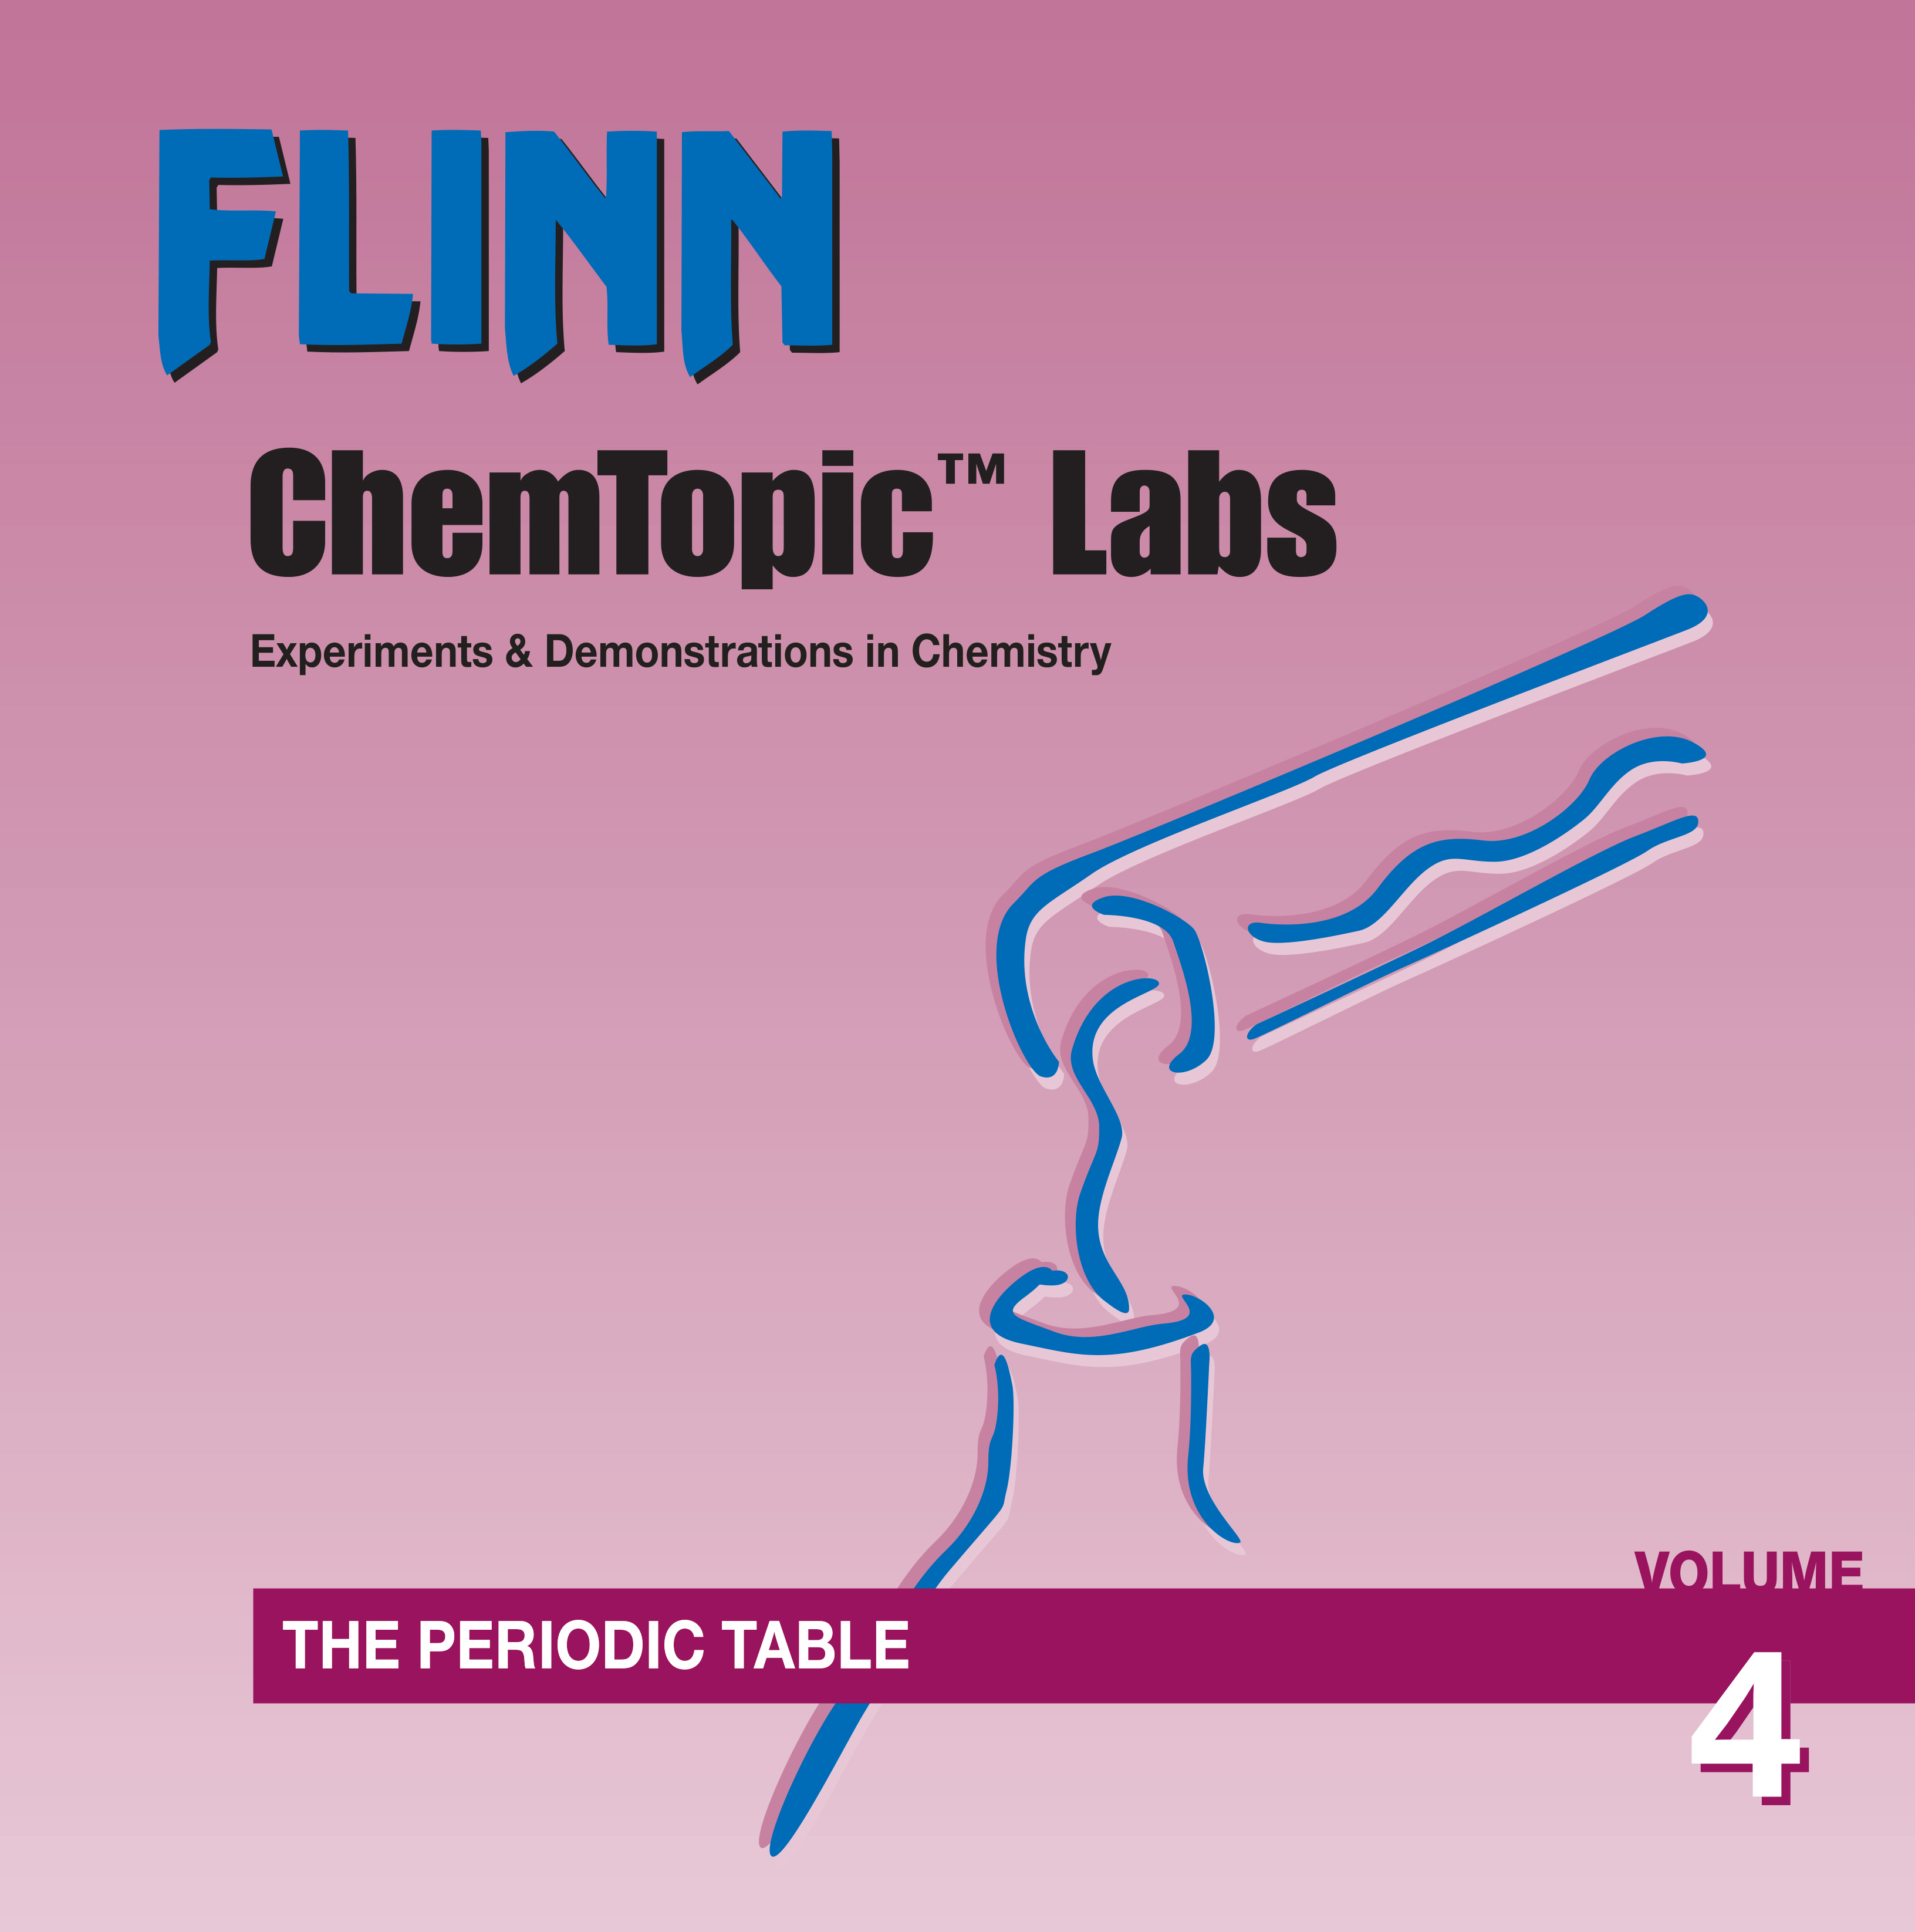 Flinn chemtopic labsthe periodic table volume 4 flinn chemtopic labs the periodic table lab manual volume 4 urtaz Image collections